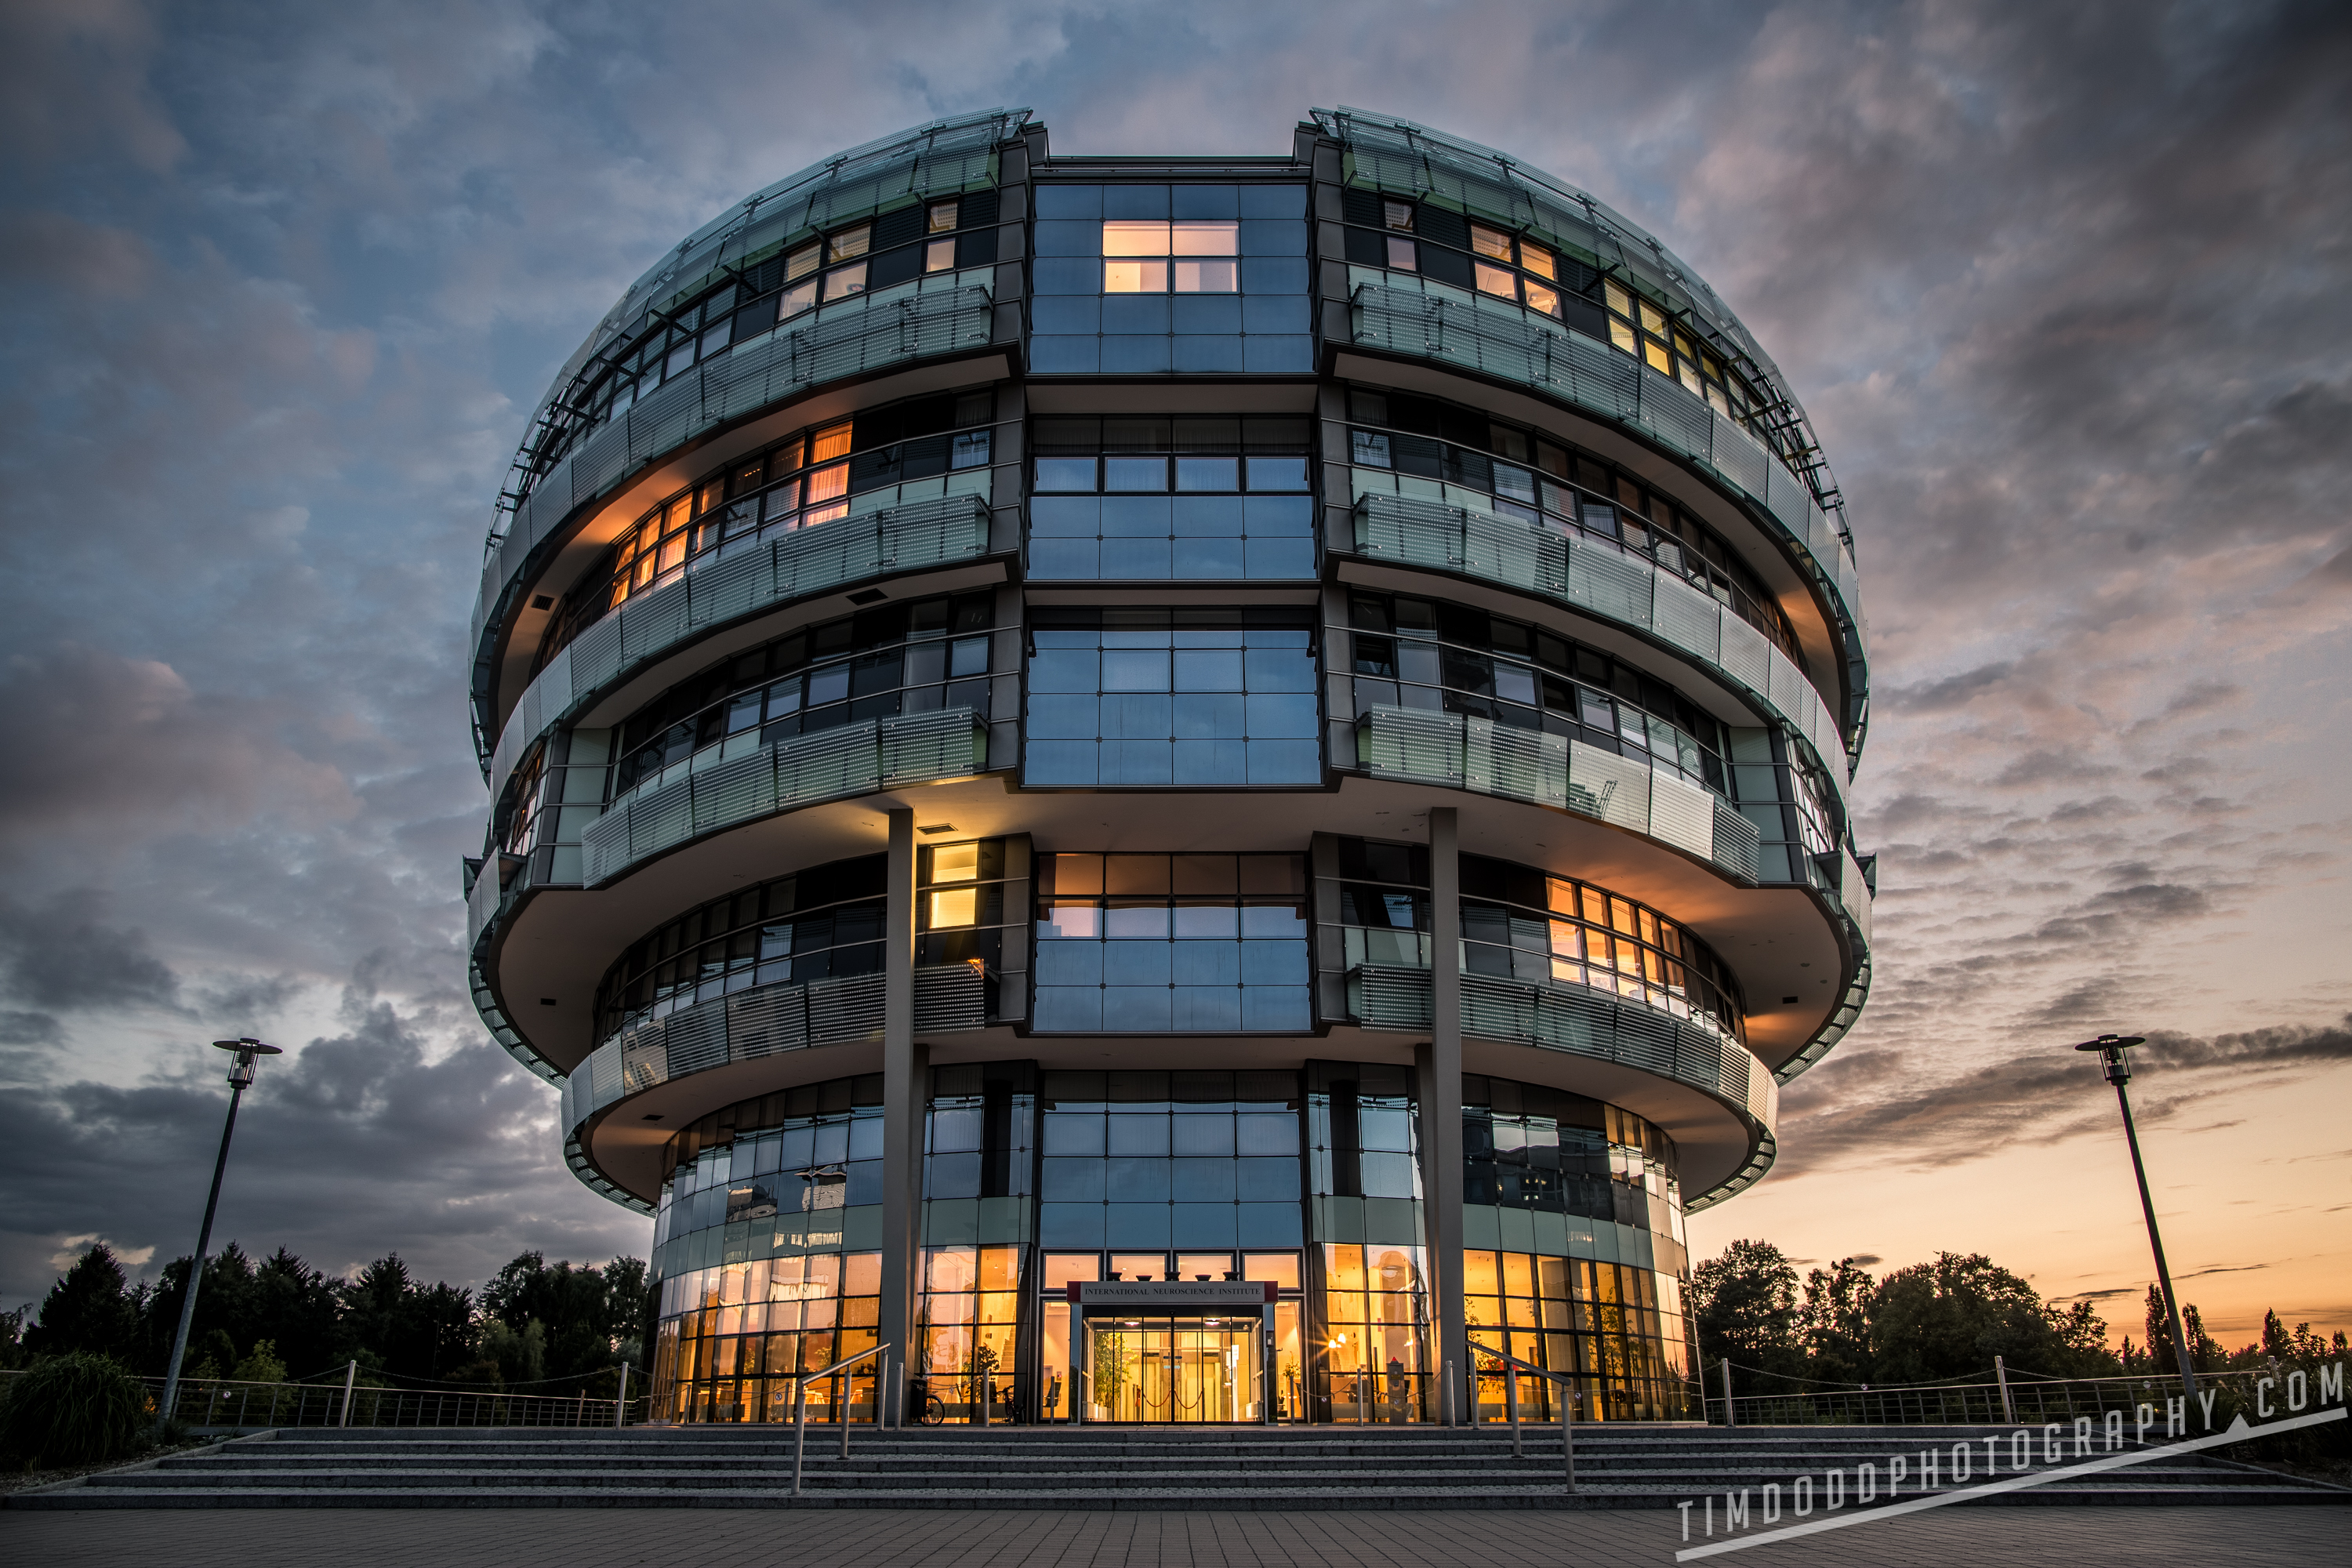 The Brain INI Hannover Hanover Germany at night by Tim Dodd Photography